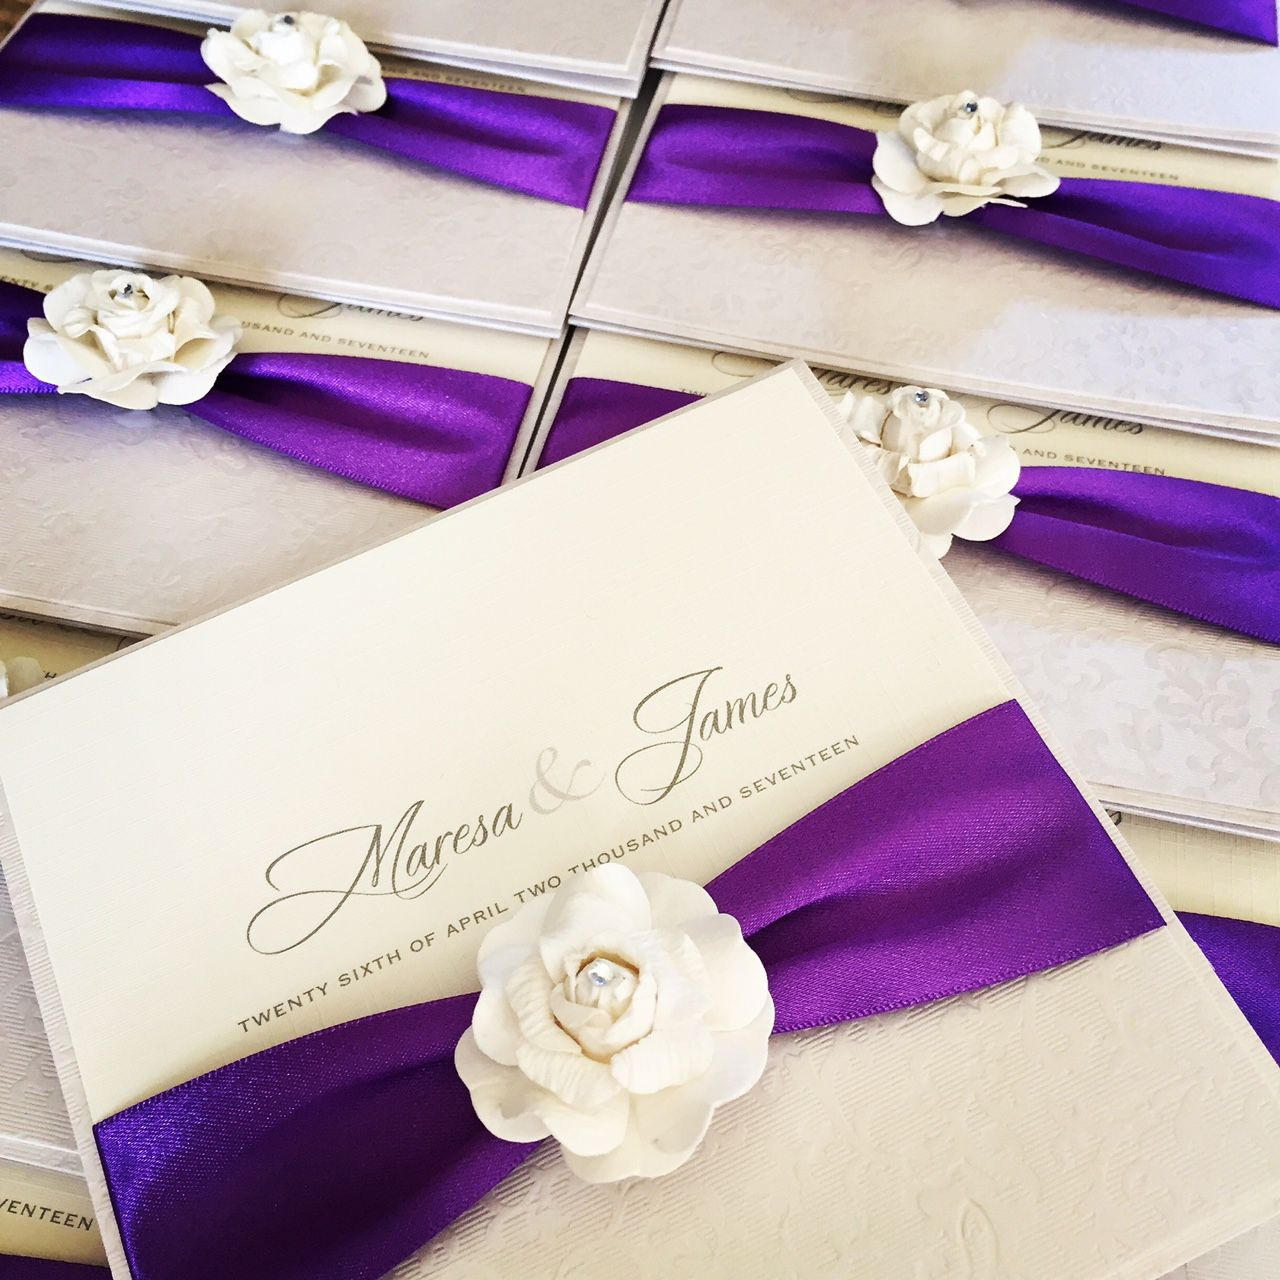 Rose themed wedding invitations with ivory rose and ribbon